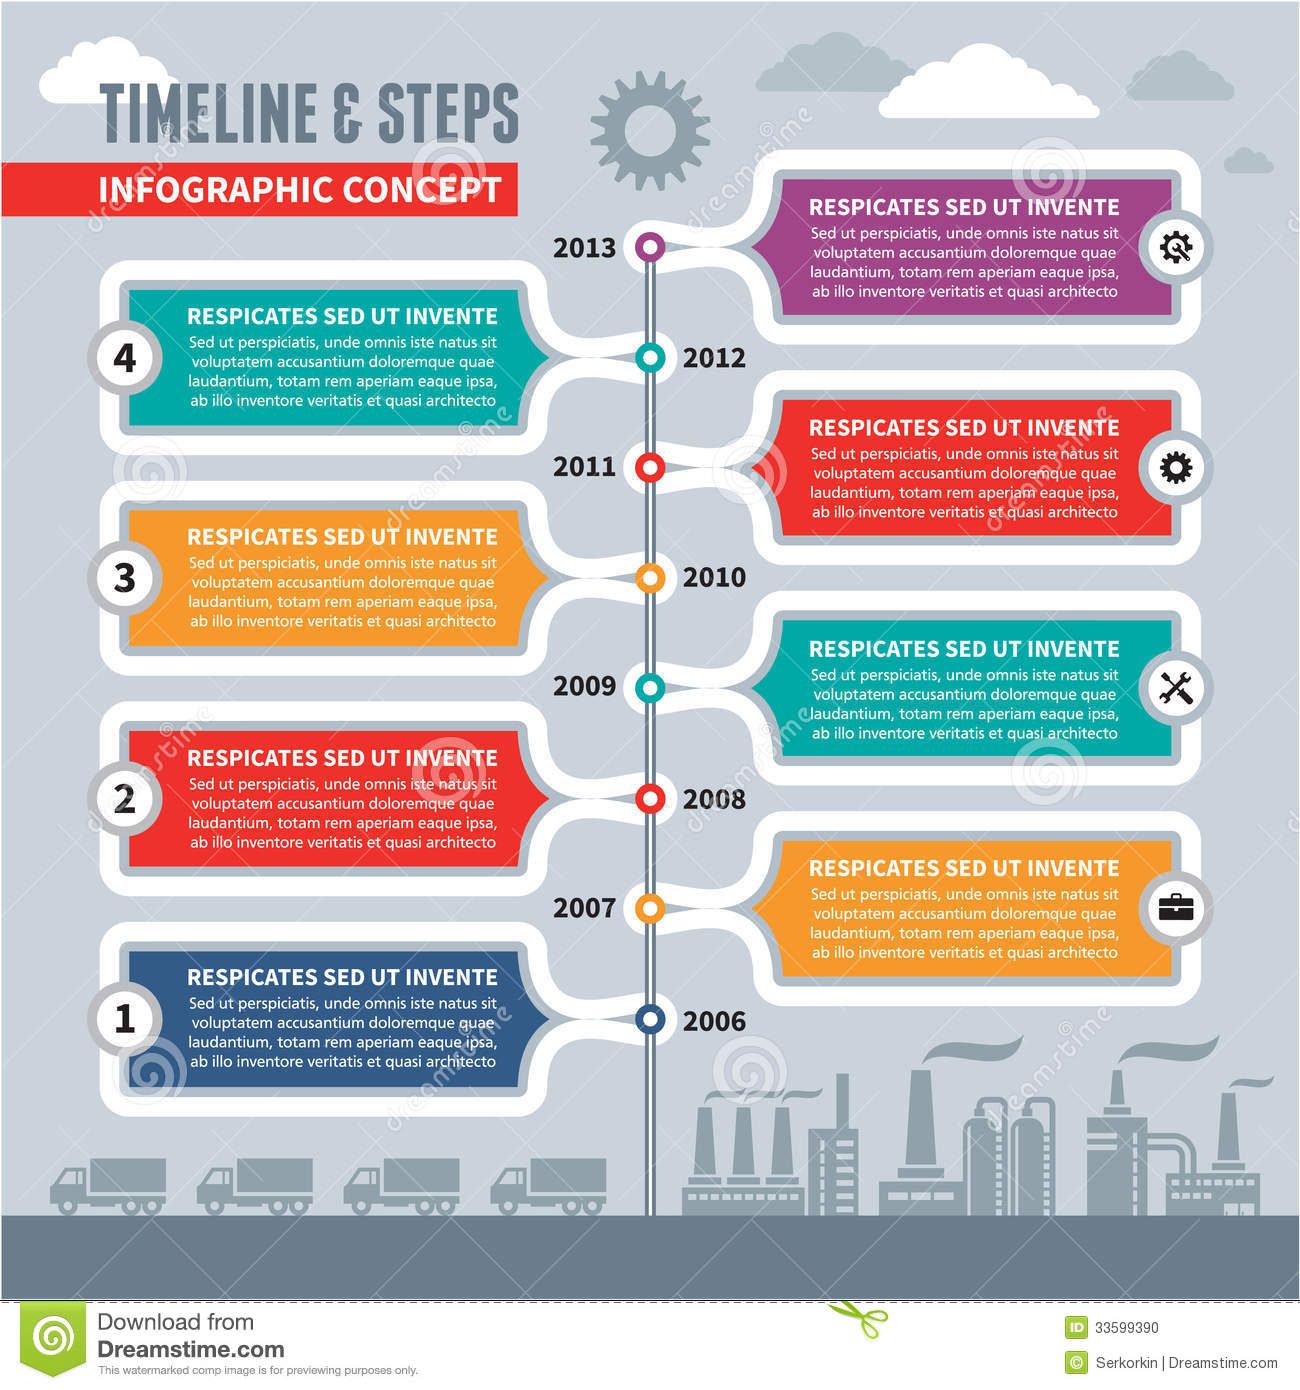 Infographic Vector Concept Timeline & Steps Stock Vector